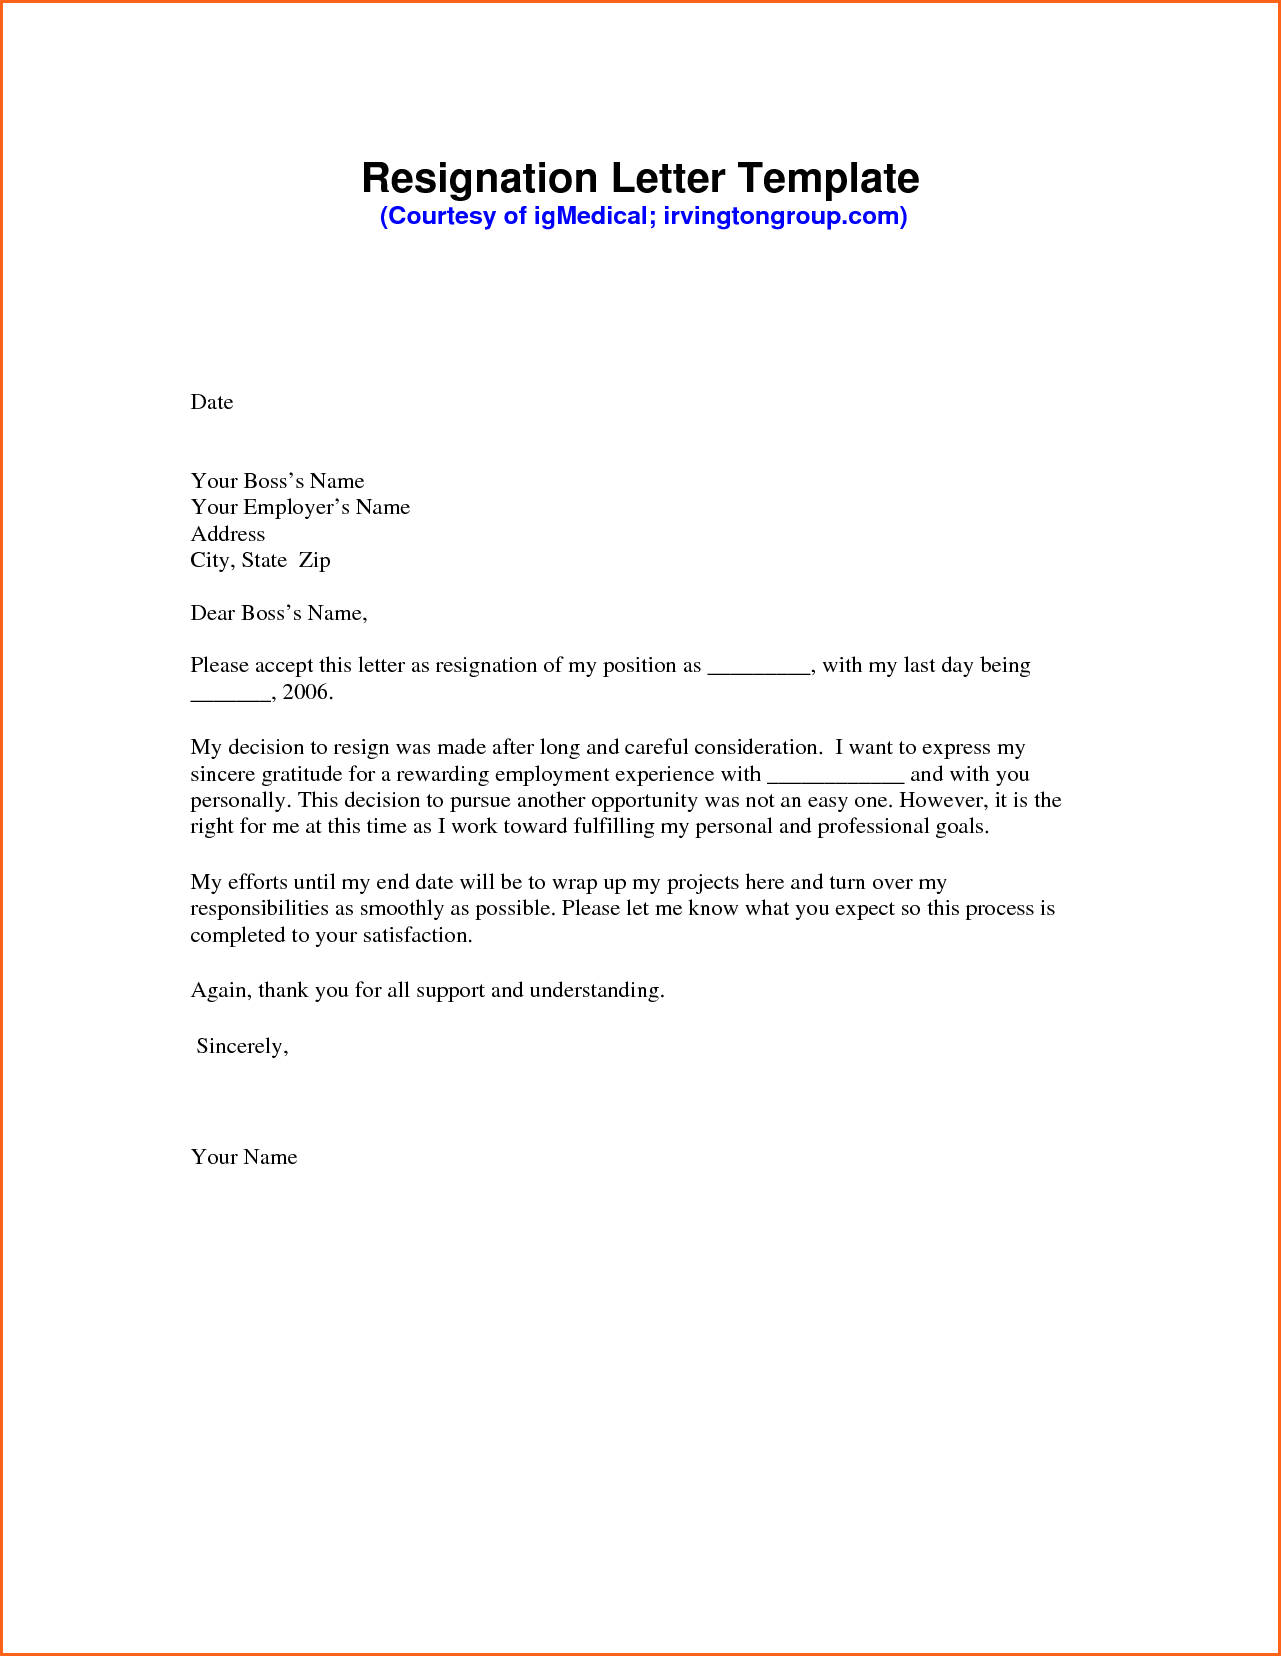 Resignation Letter Format Doc from www.addictionary.org